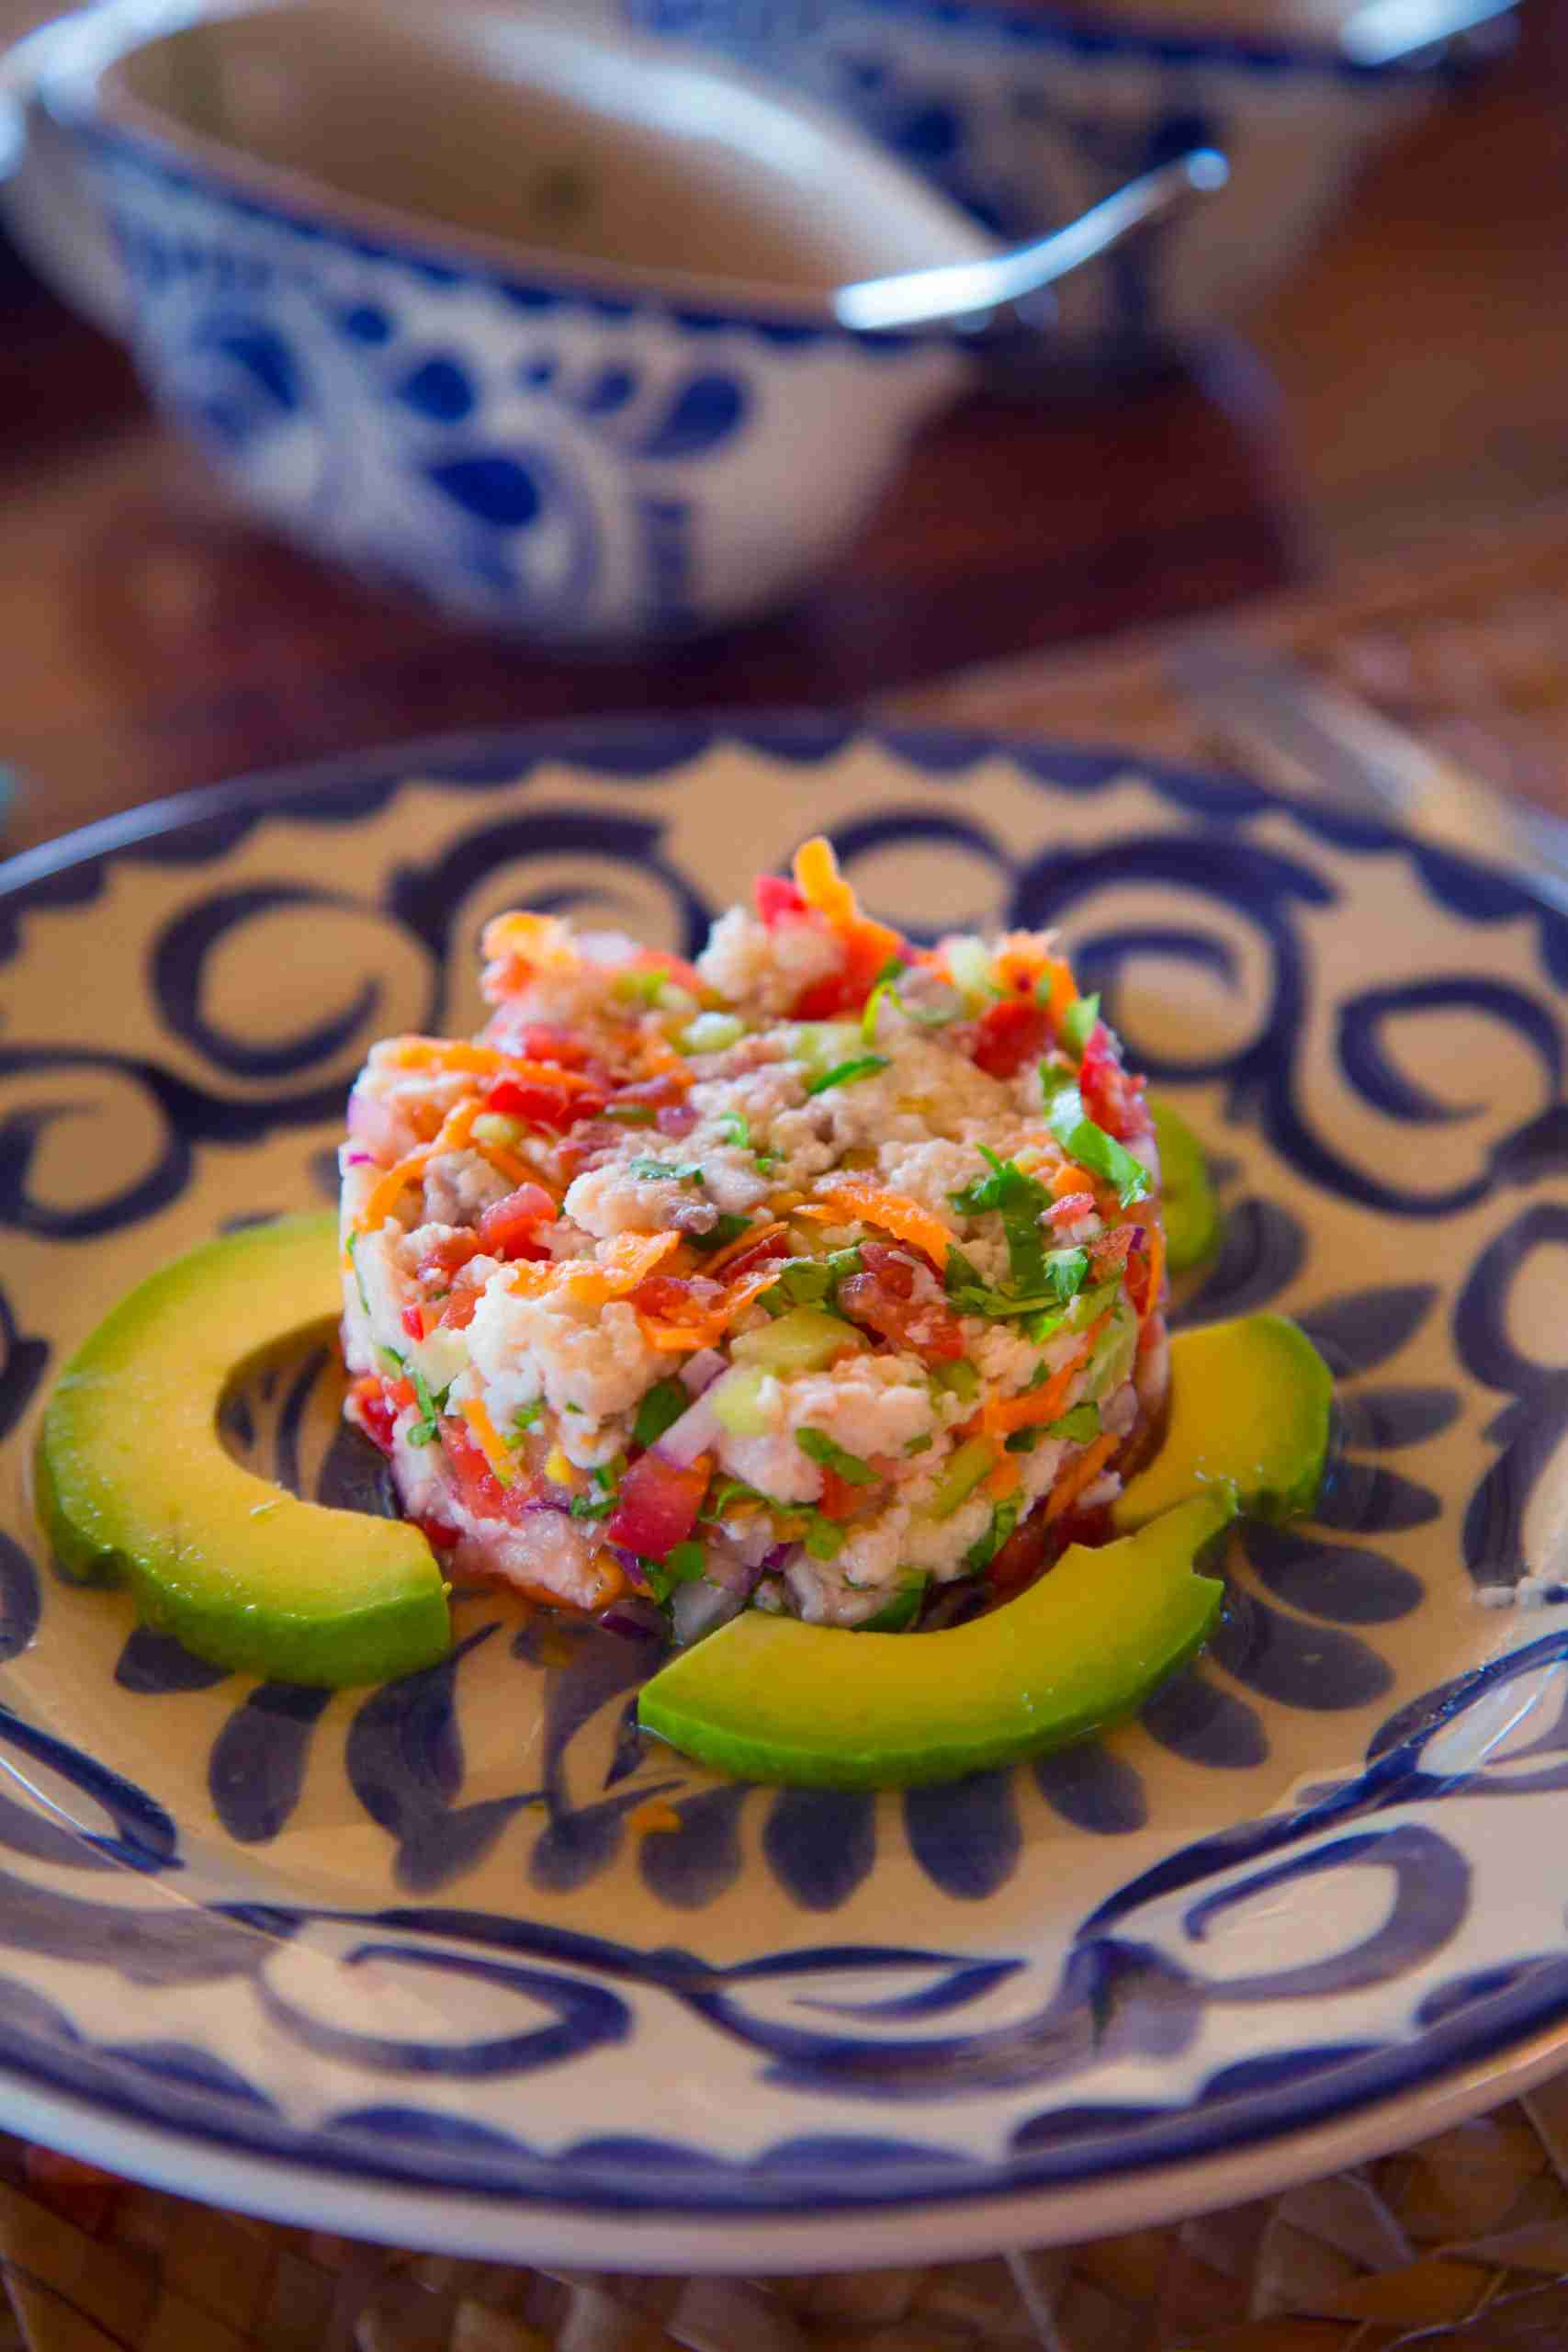 Ceviche is a seafood dish popular in the coastal regions of the Americas, especially Central and South America. The dish is typically made from fresh raw fish marinated in citrus juices, such as lemon or lime, and spiced with aji or chili peppers. Additional seasonings, such as chopped onions, salt, and coriander, may also be added. Ceviche is usually accompanied by side dishes that complement its flavors, such as sweet potato, lettuce, corn, avocado or plantain. As the dish is not cooked with heat, it must be prepared fresh to minimize the risk of food poisoning.